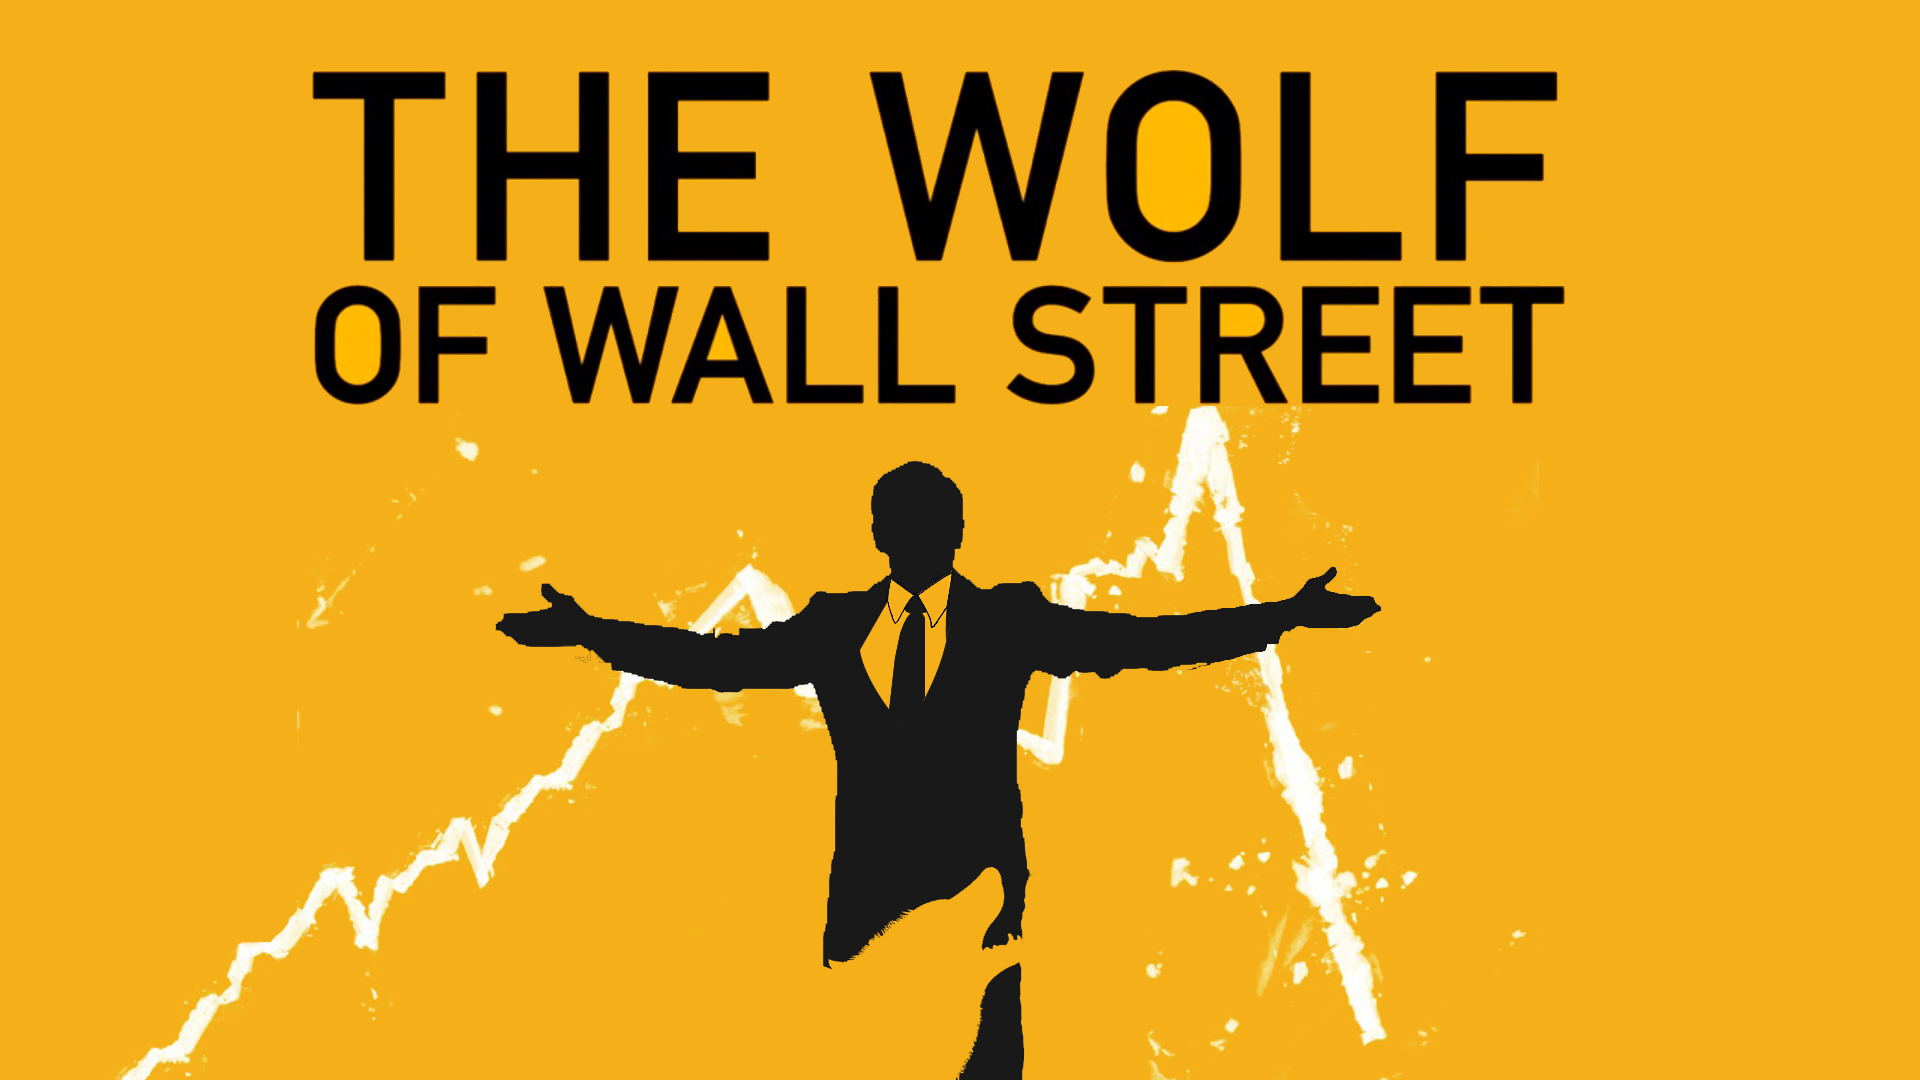 The wolf of wall street wallpapers pictures images Wallpapers for the wall